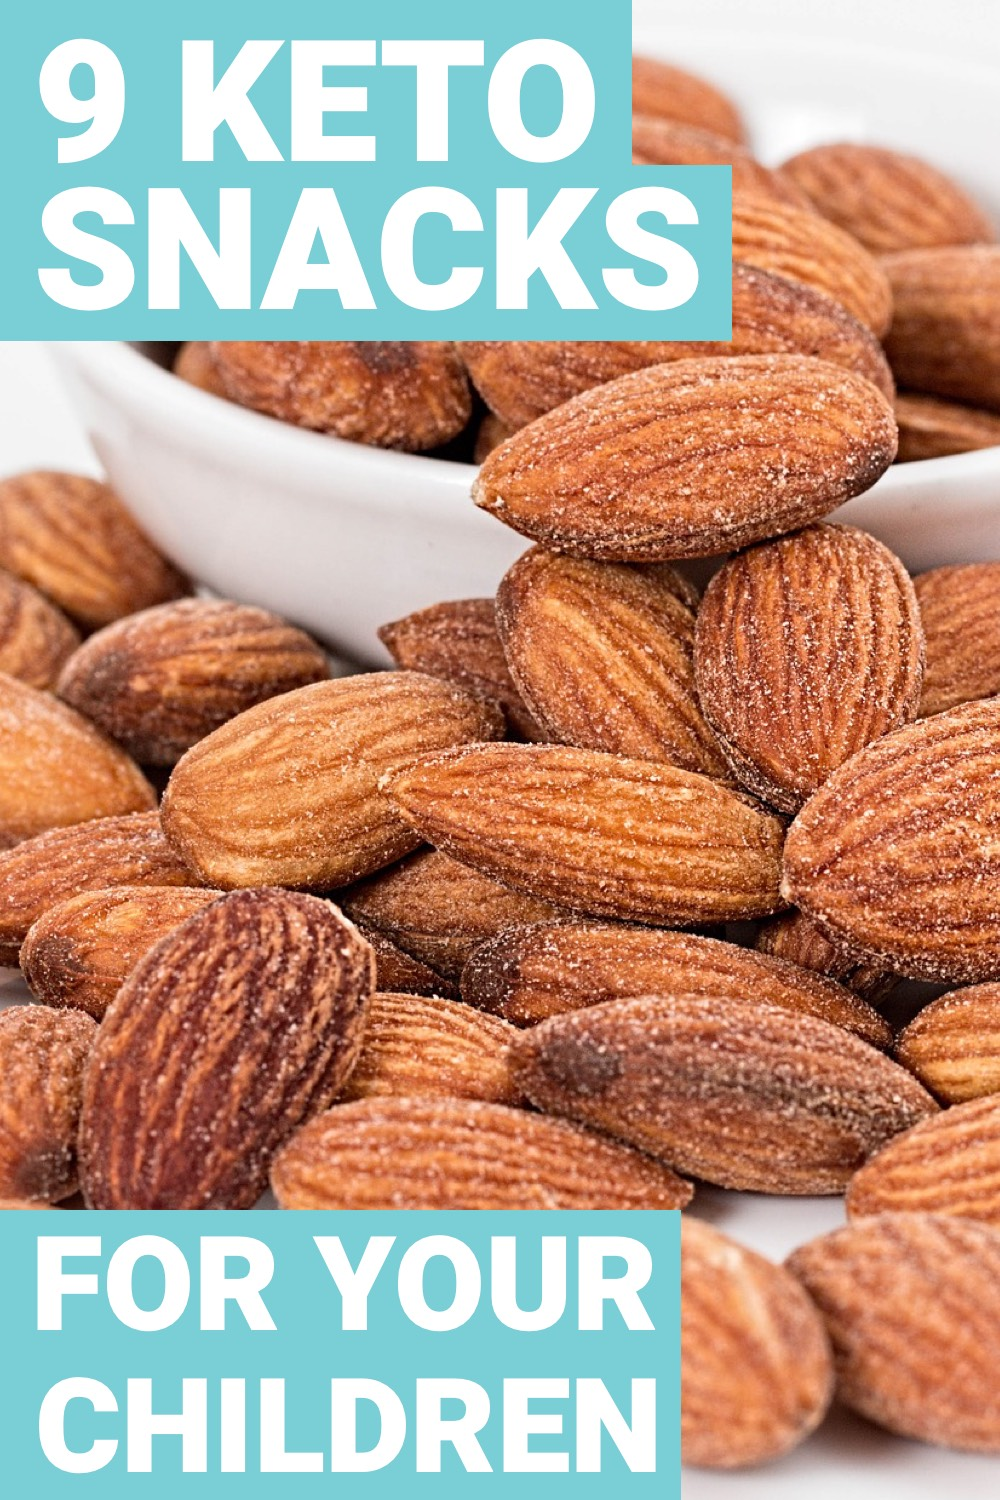 Kids can sometimes be a hassle when it comes to healthy snacks. However, these 9 keto snacks are guaranteed to make your kids happy.